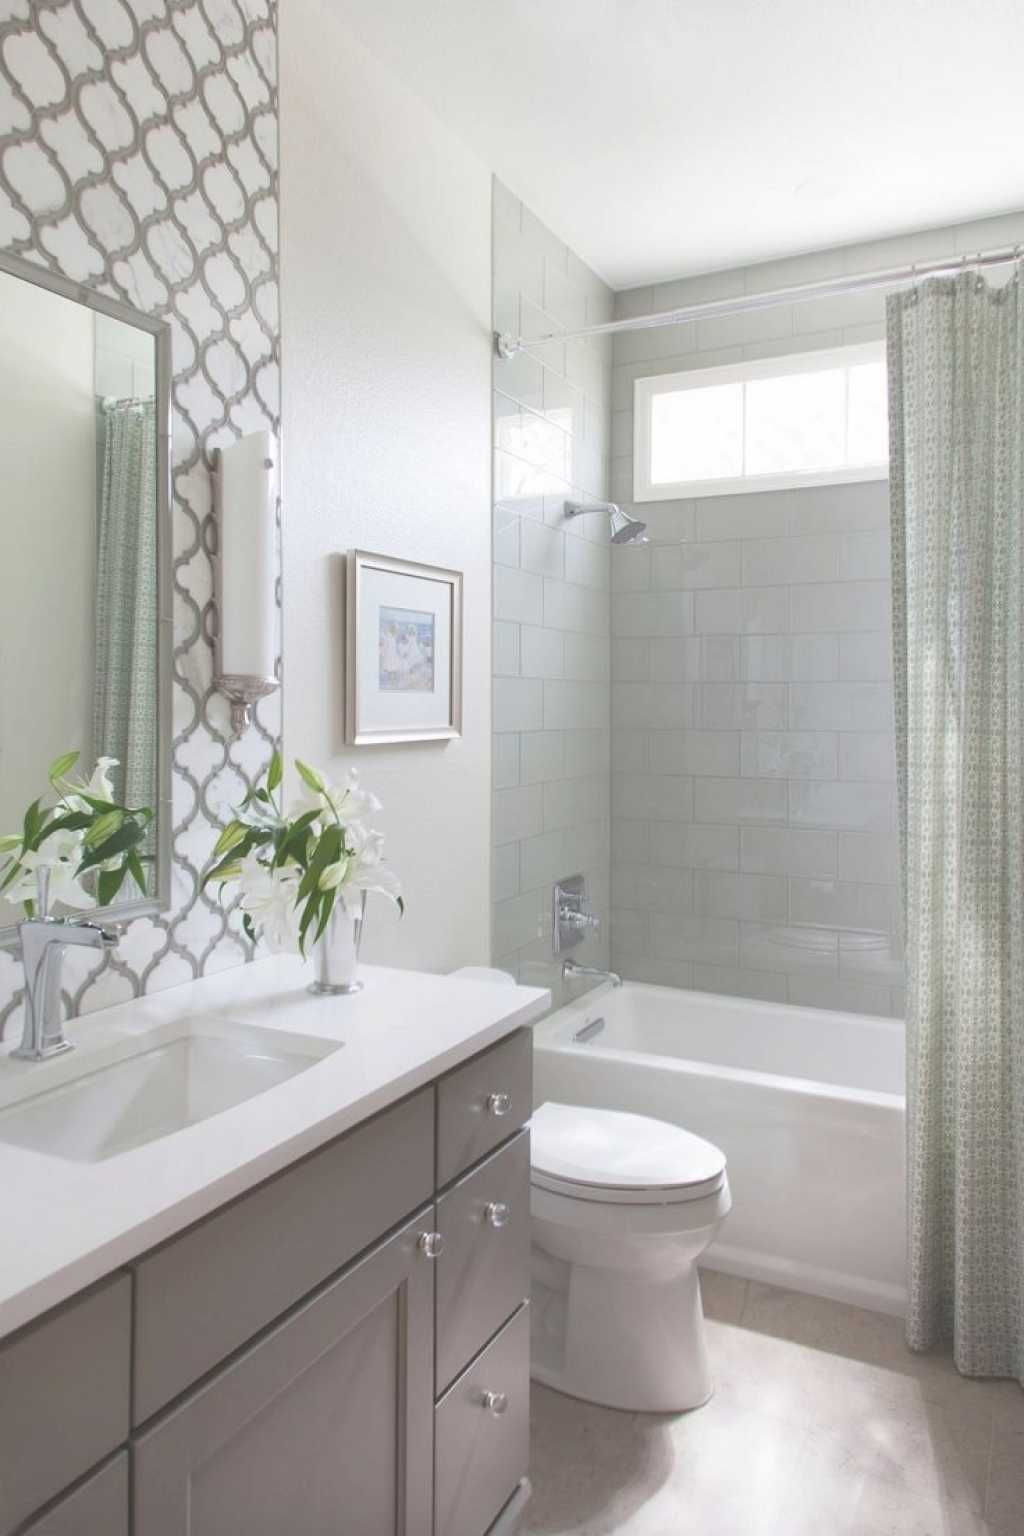 Glamorous Small Bathroom Tub Shower Combo Remodeling Ideas Http://zoladecor intended for Ideas For Small Bathroom Remodel